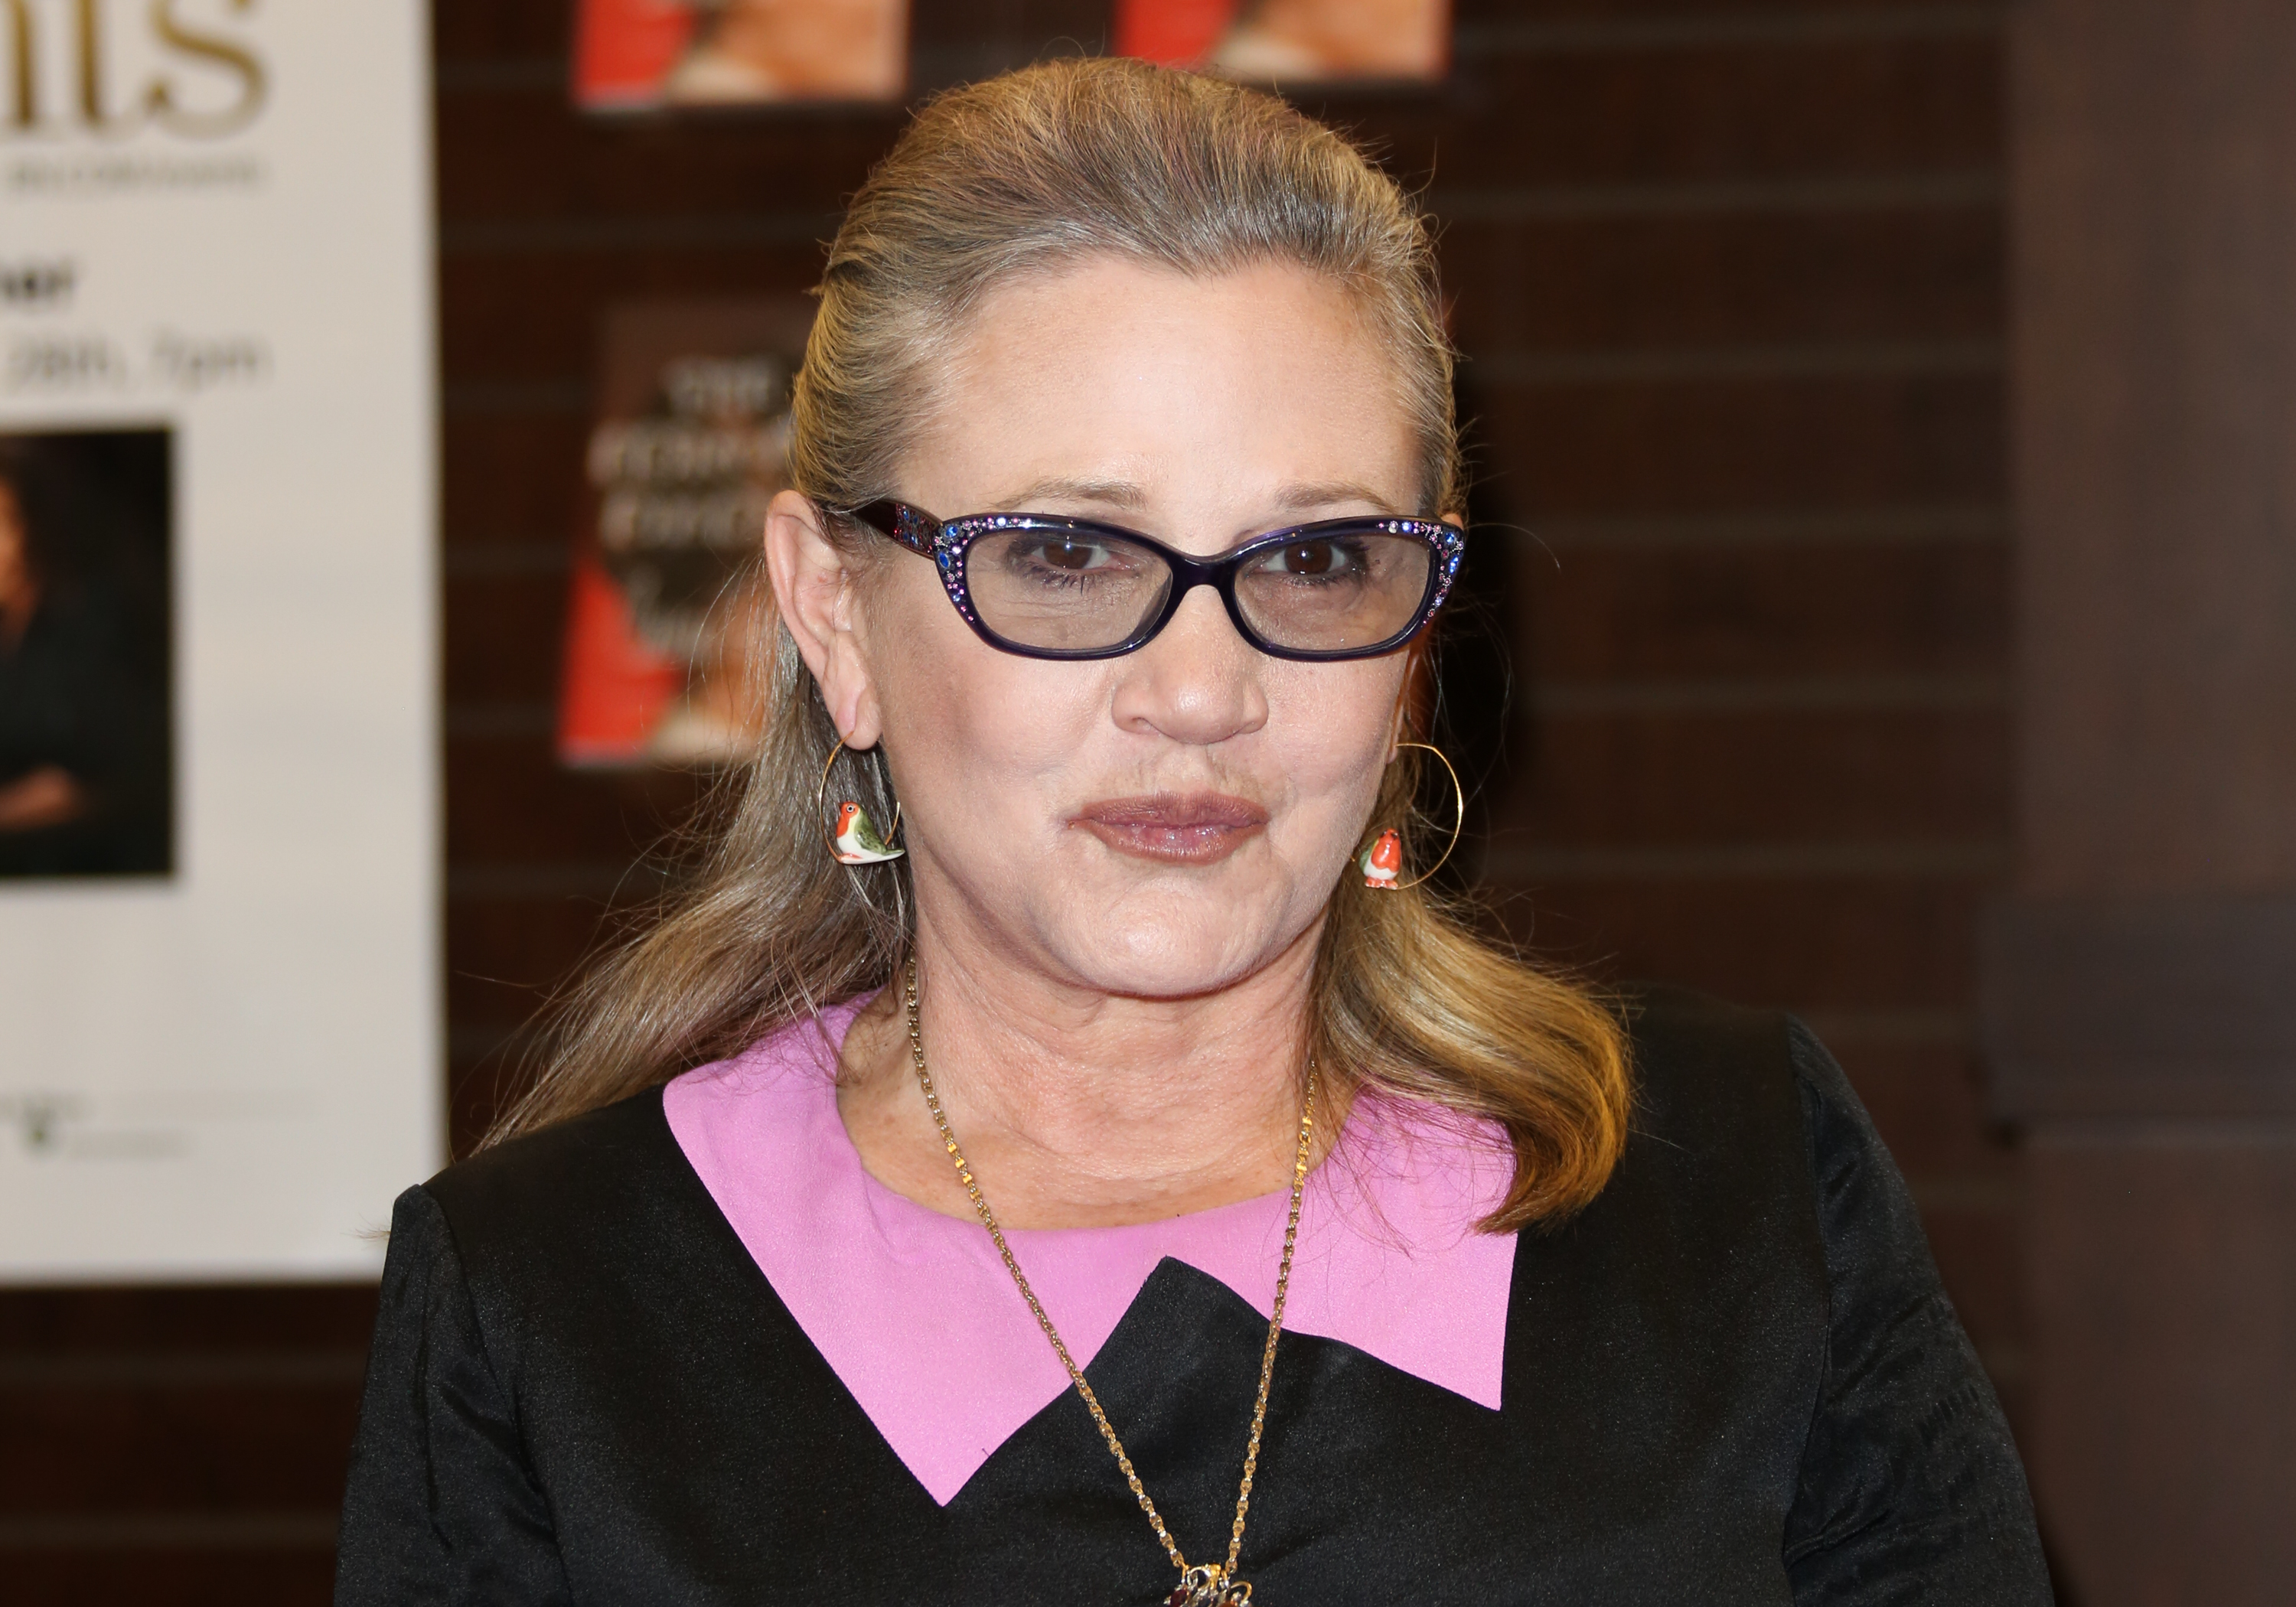 Actress Carrie Fisher signs copies of her new book  The Princess Diarist  at Barnes & Noble at The Grove on November 28, 2016 in Los Angeles, California.